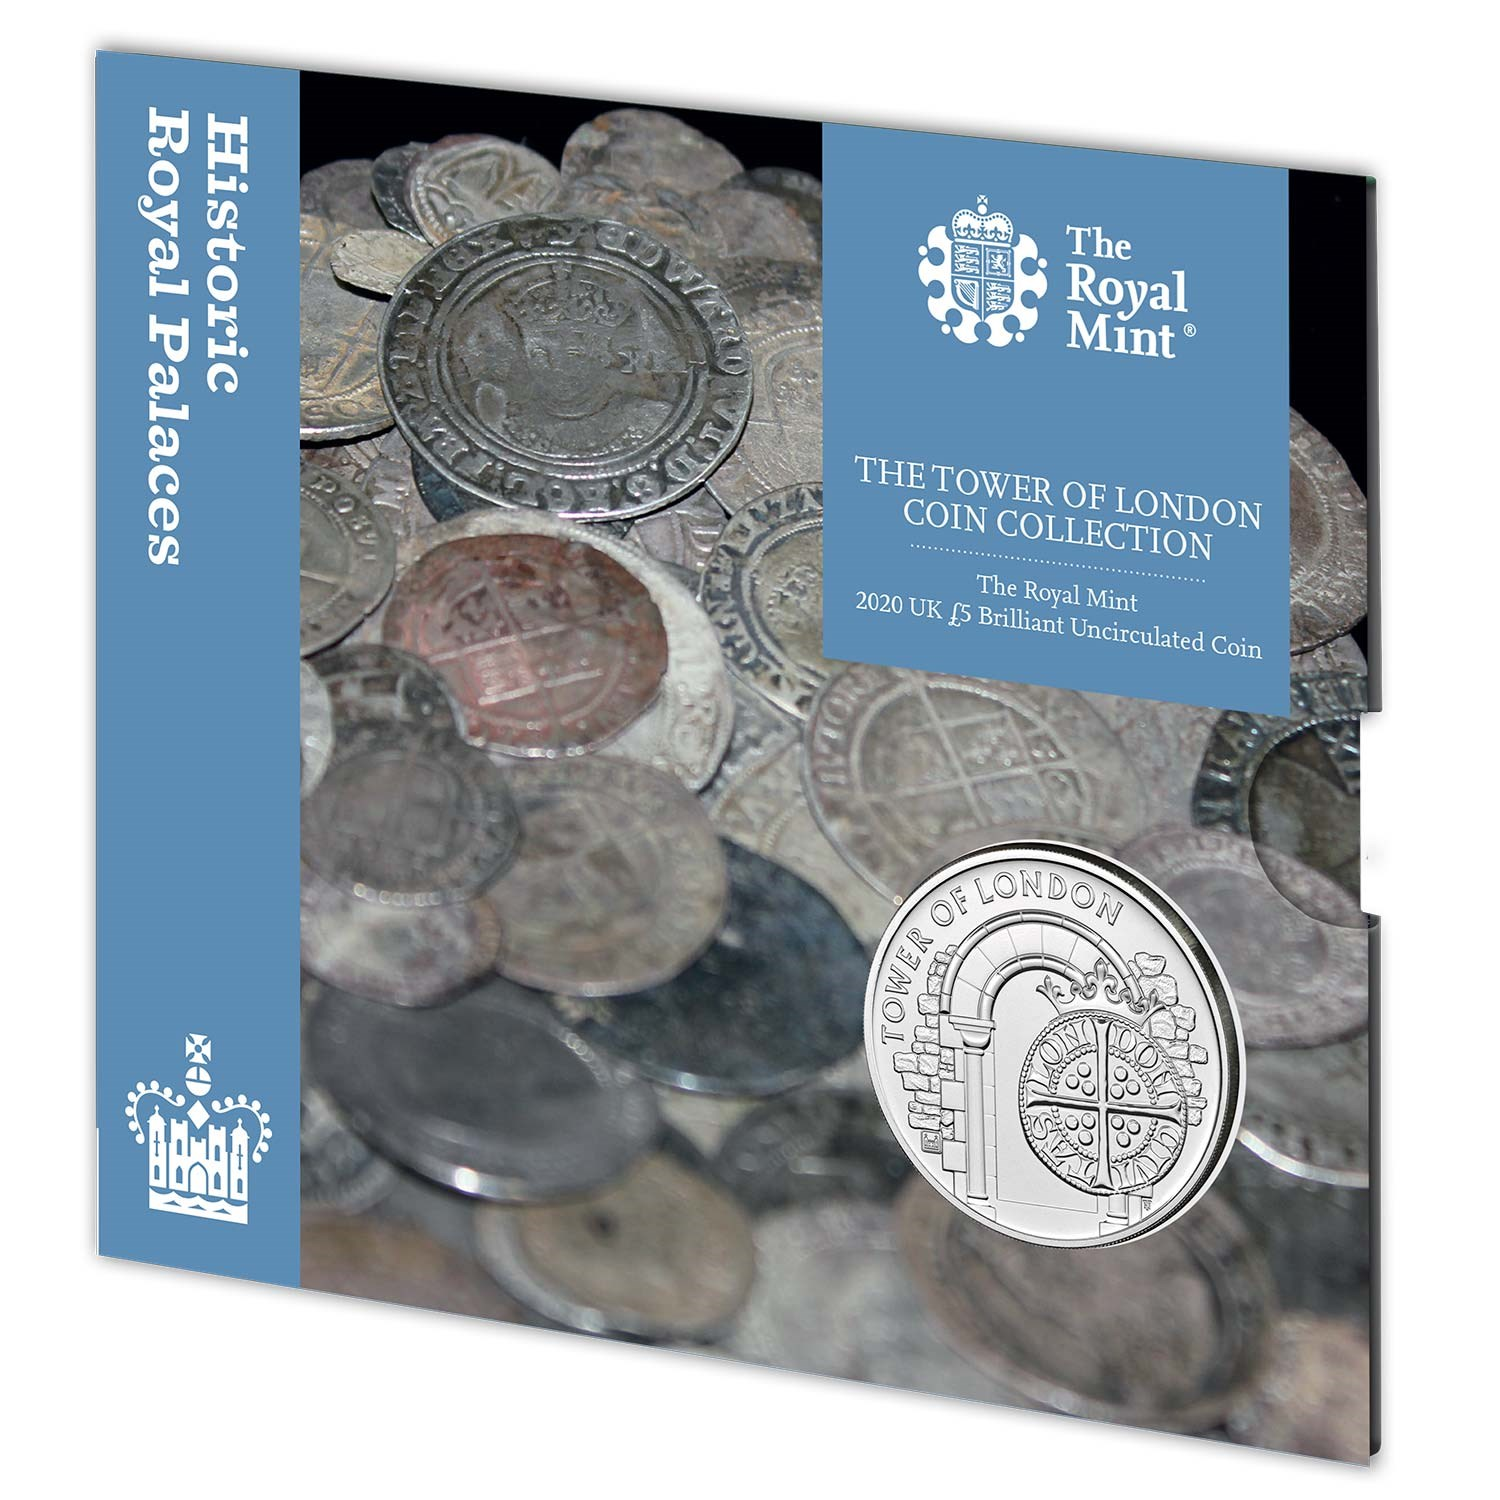 The Royal Mint 2020 UK £5 Brilliant Uncirculated Coin